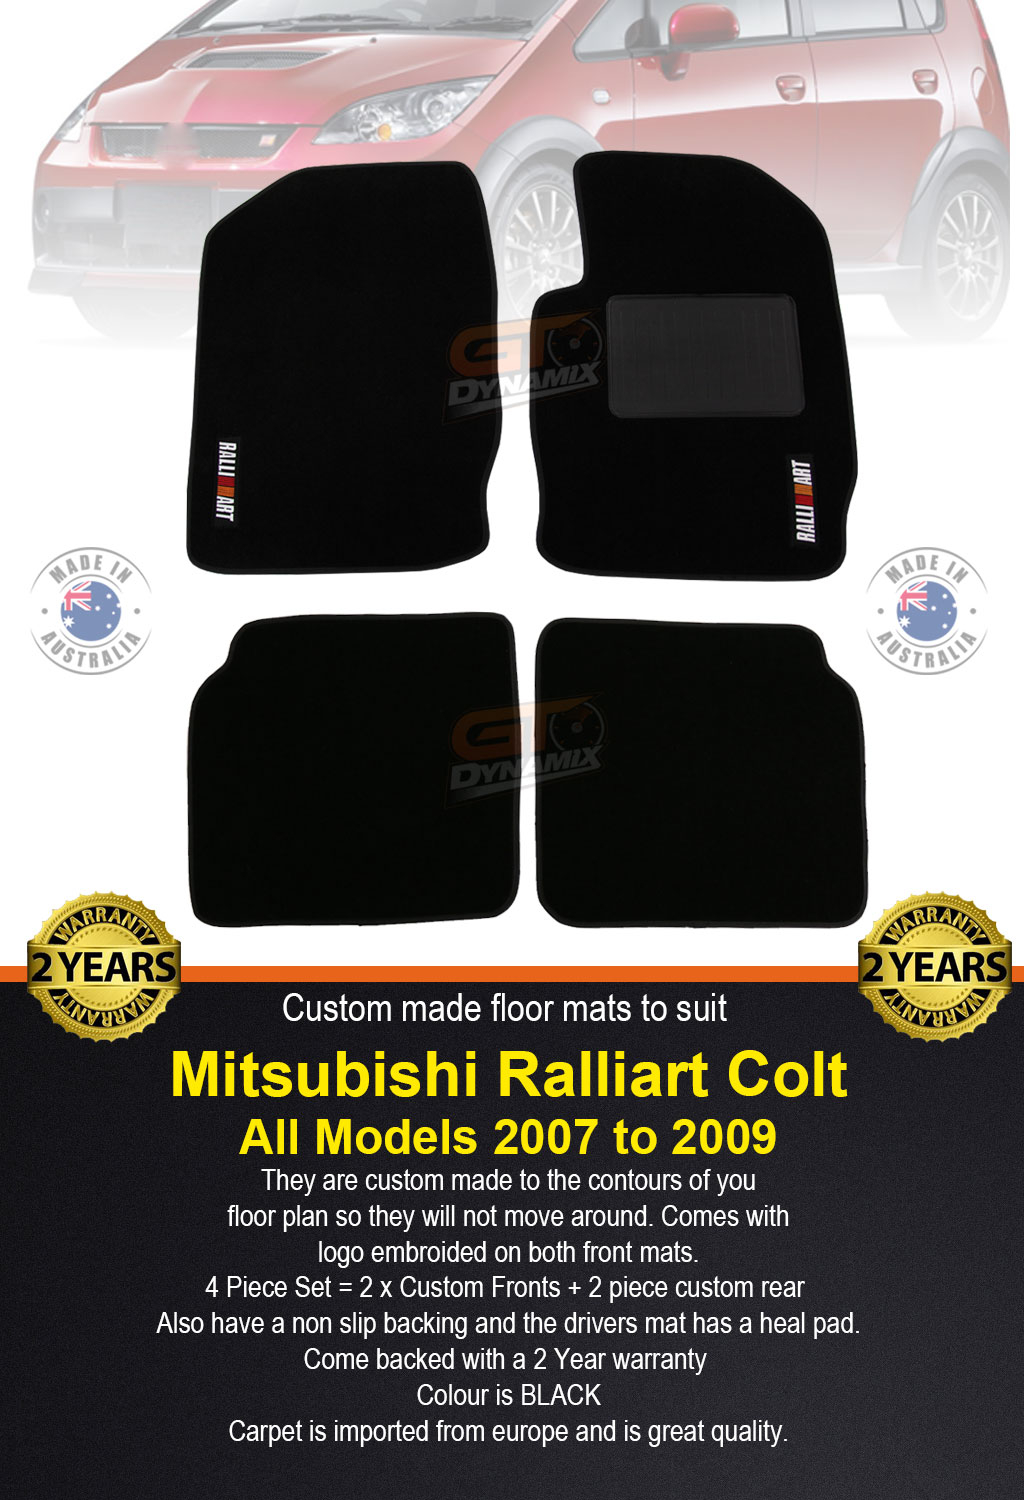 Mitsubishi Ralliart Colt Rg Custom Made Floor Mats Front